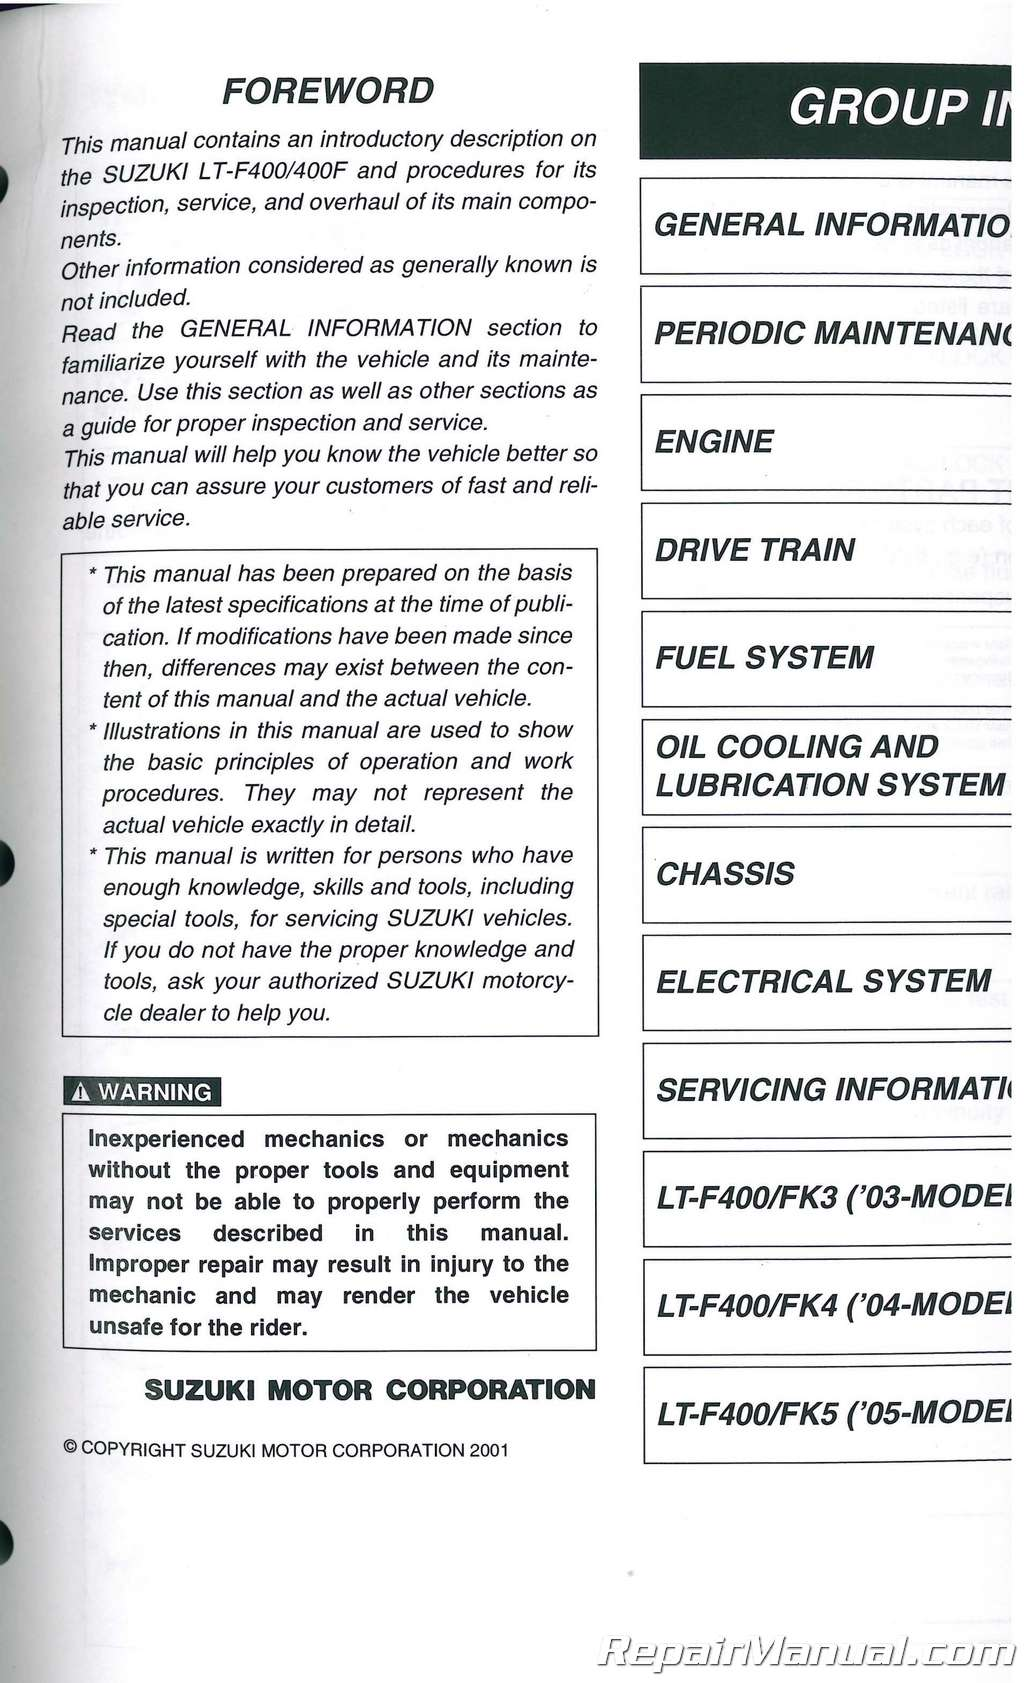 1989 Mazda B2200 Wiring Diagram Also 1989 Mazda B2200 Engine Free